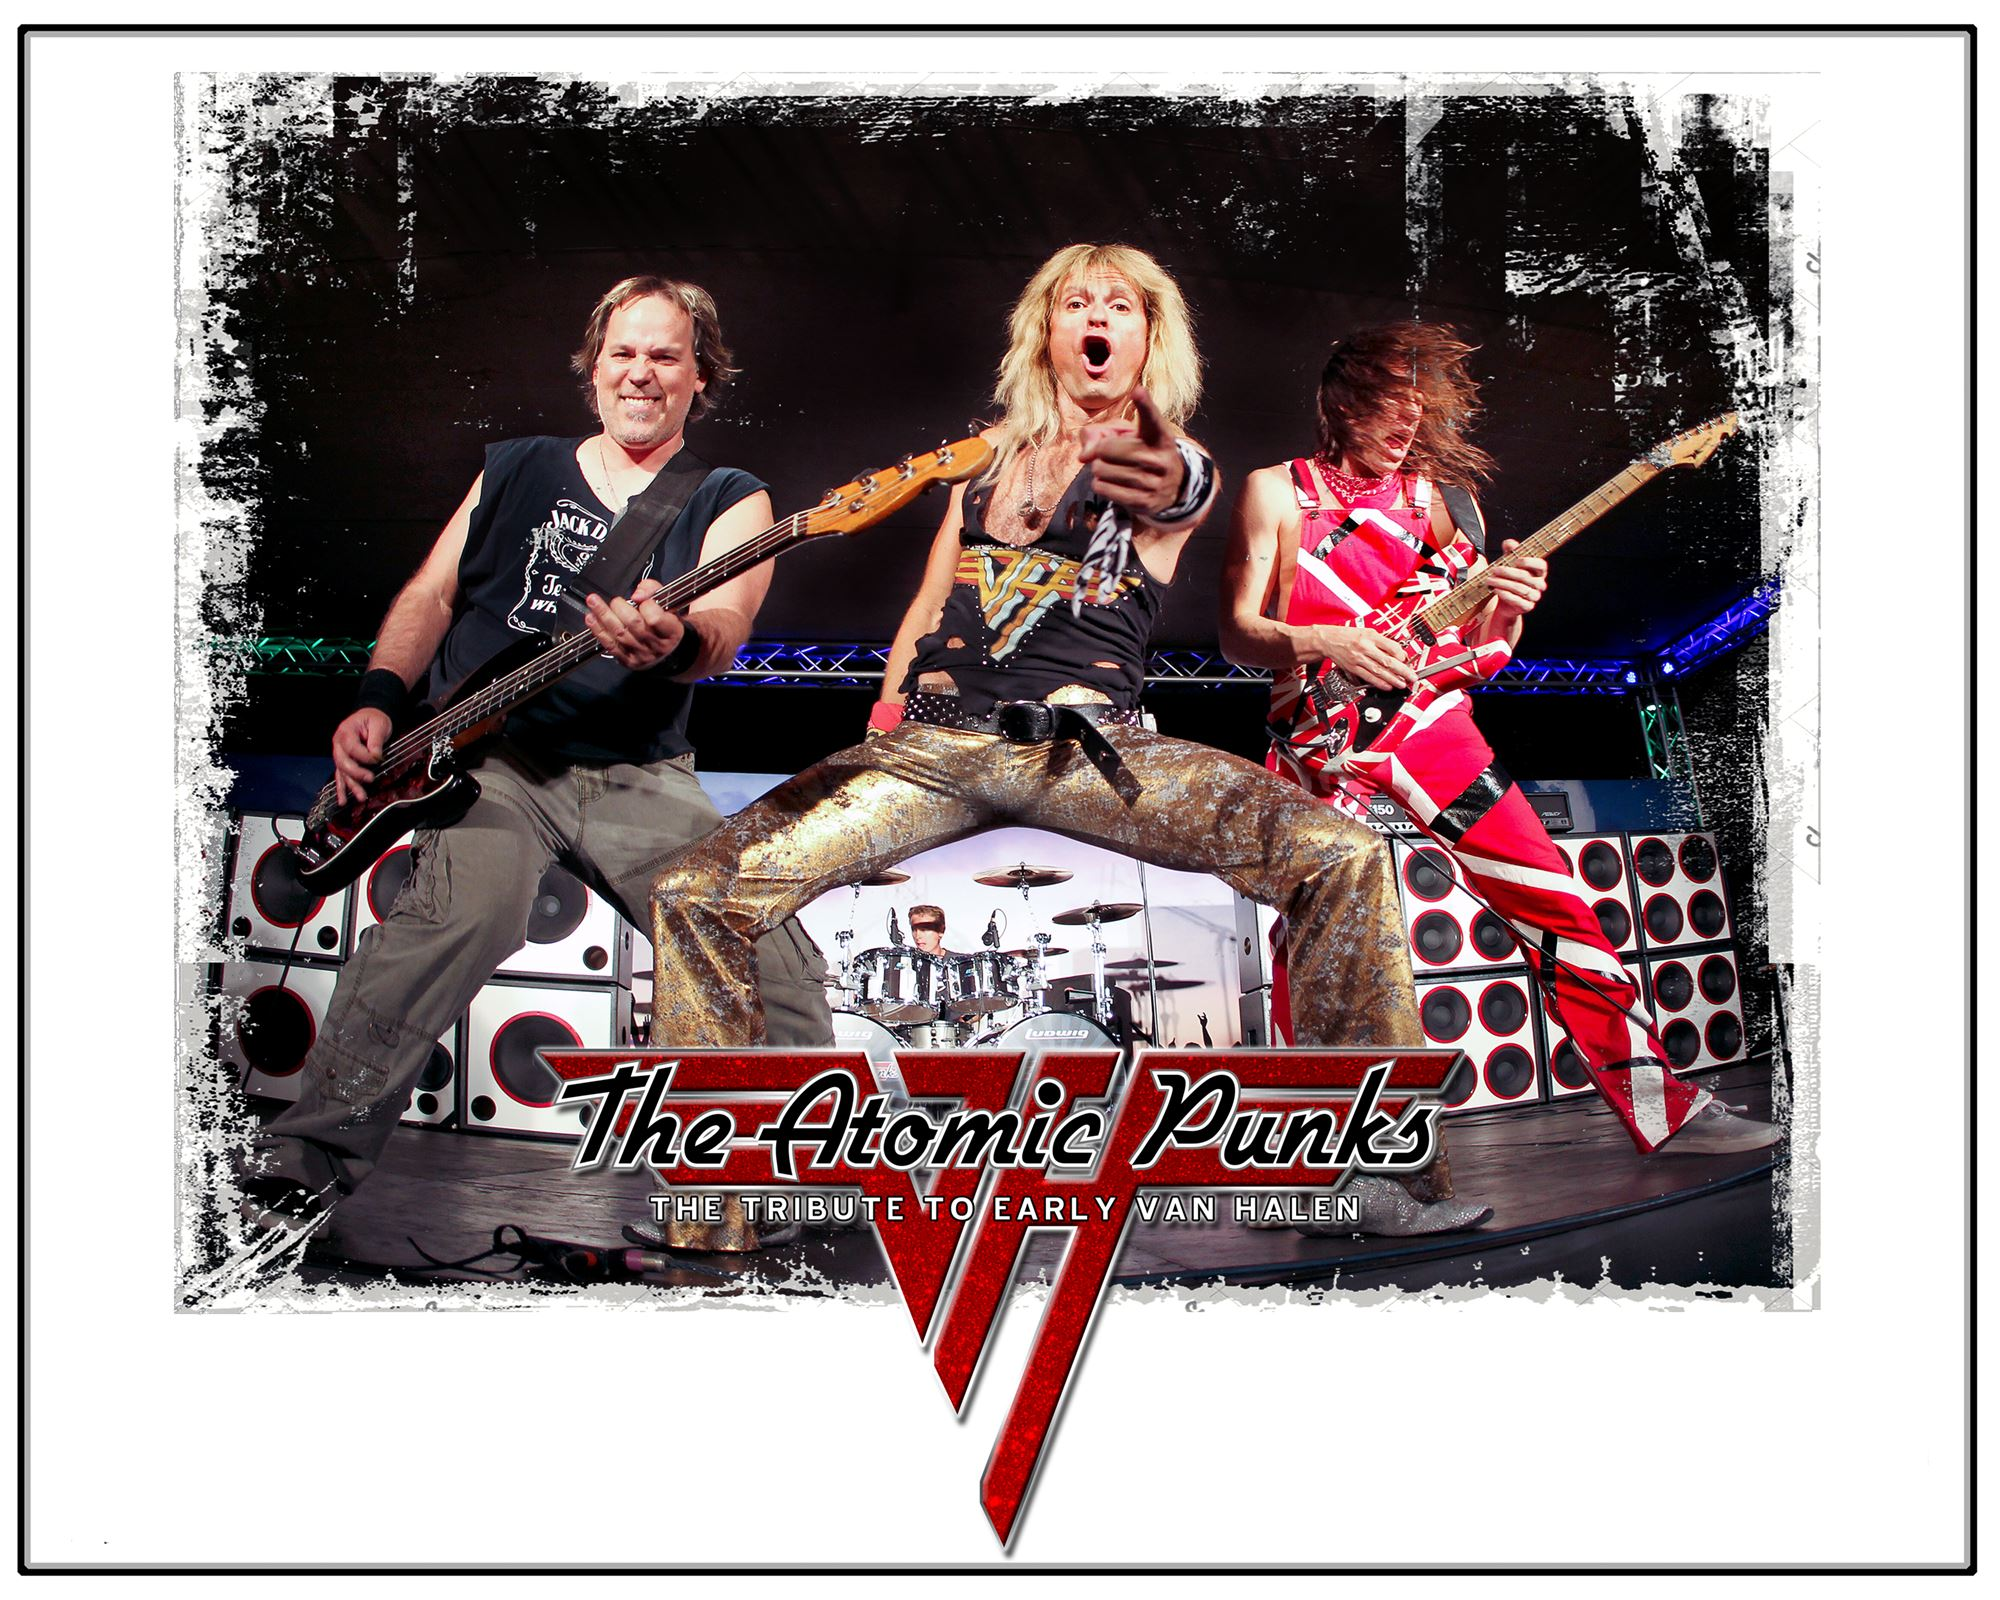 PRCA Wildcard w/ <br>The Atomic Punks: the Tribute to Early Van Halen<br> Friday, Feb. 26 at 7 PM